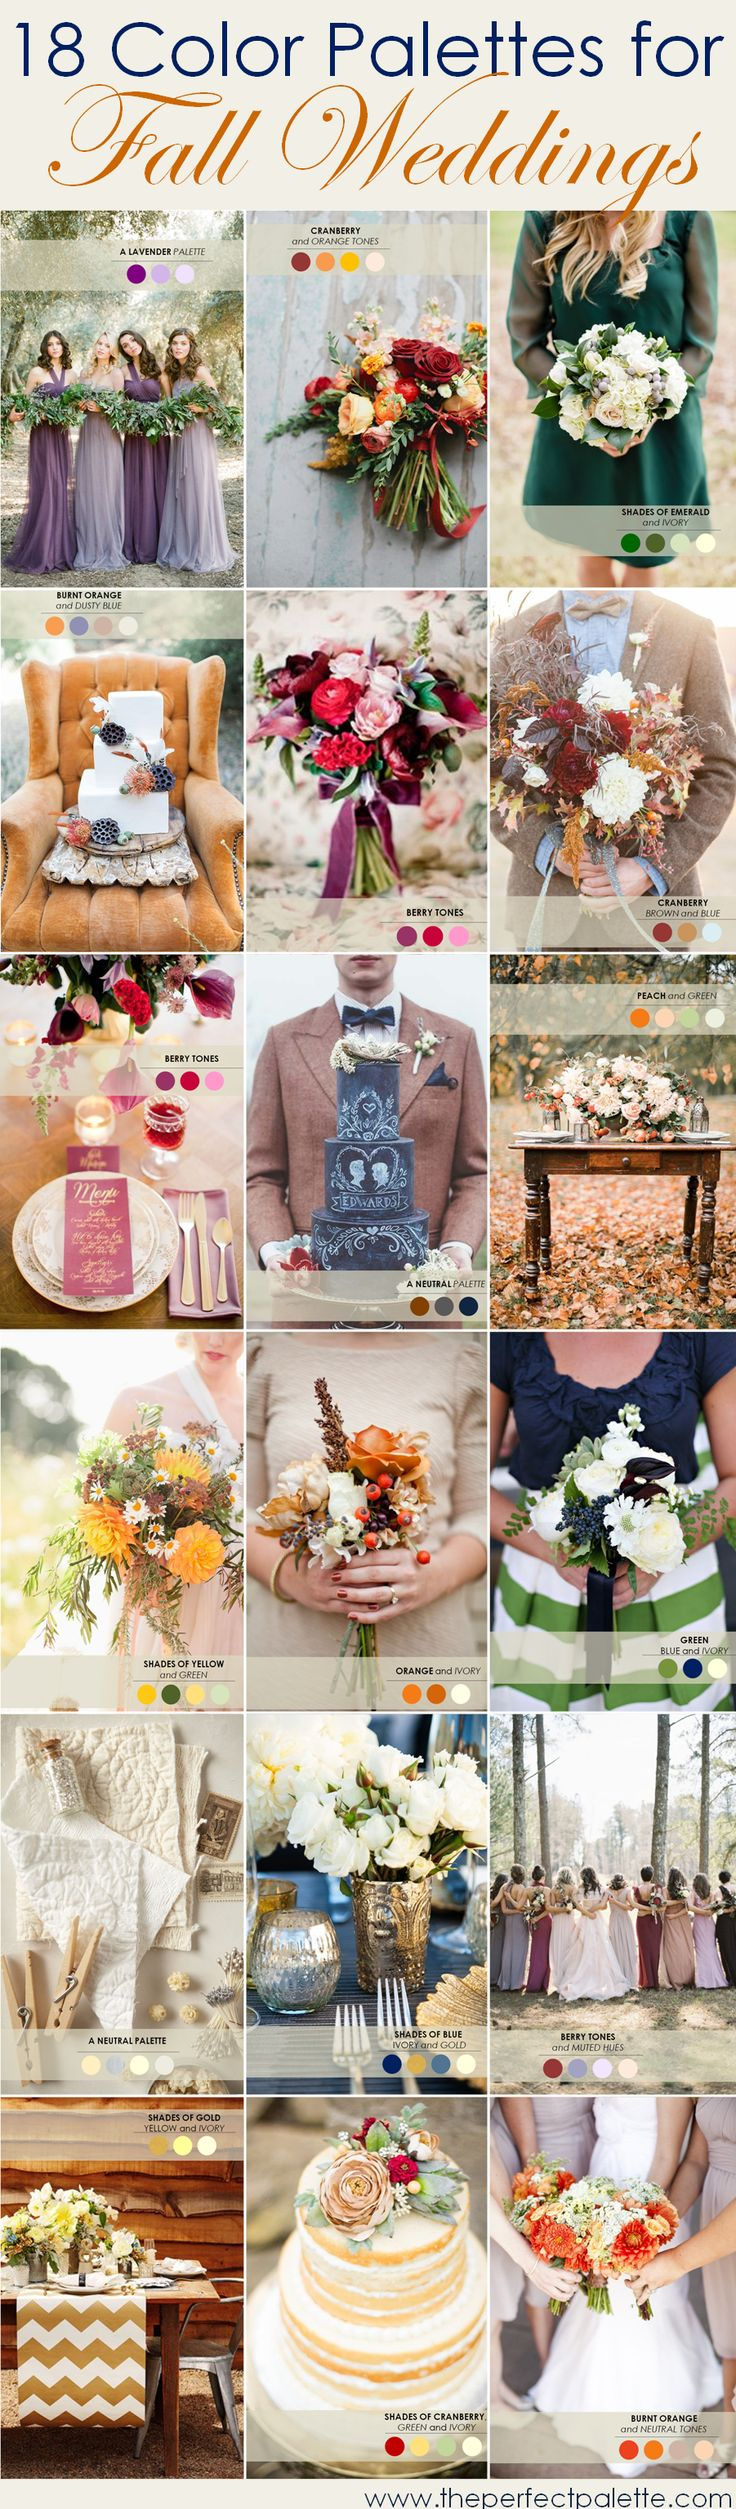 <18 Color Palettes for a Fall Wedding>.